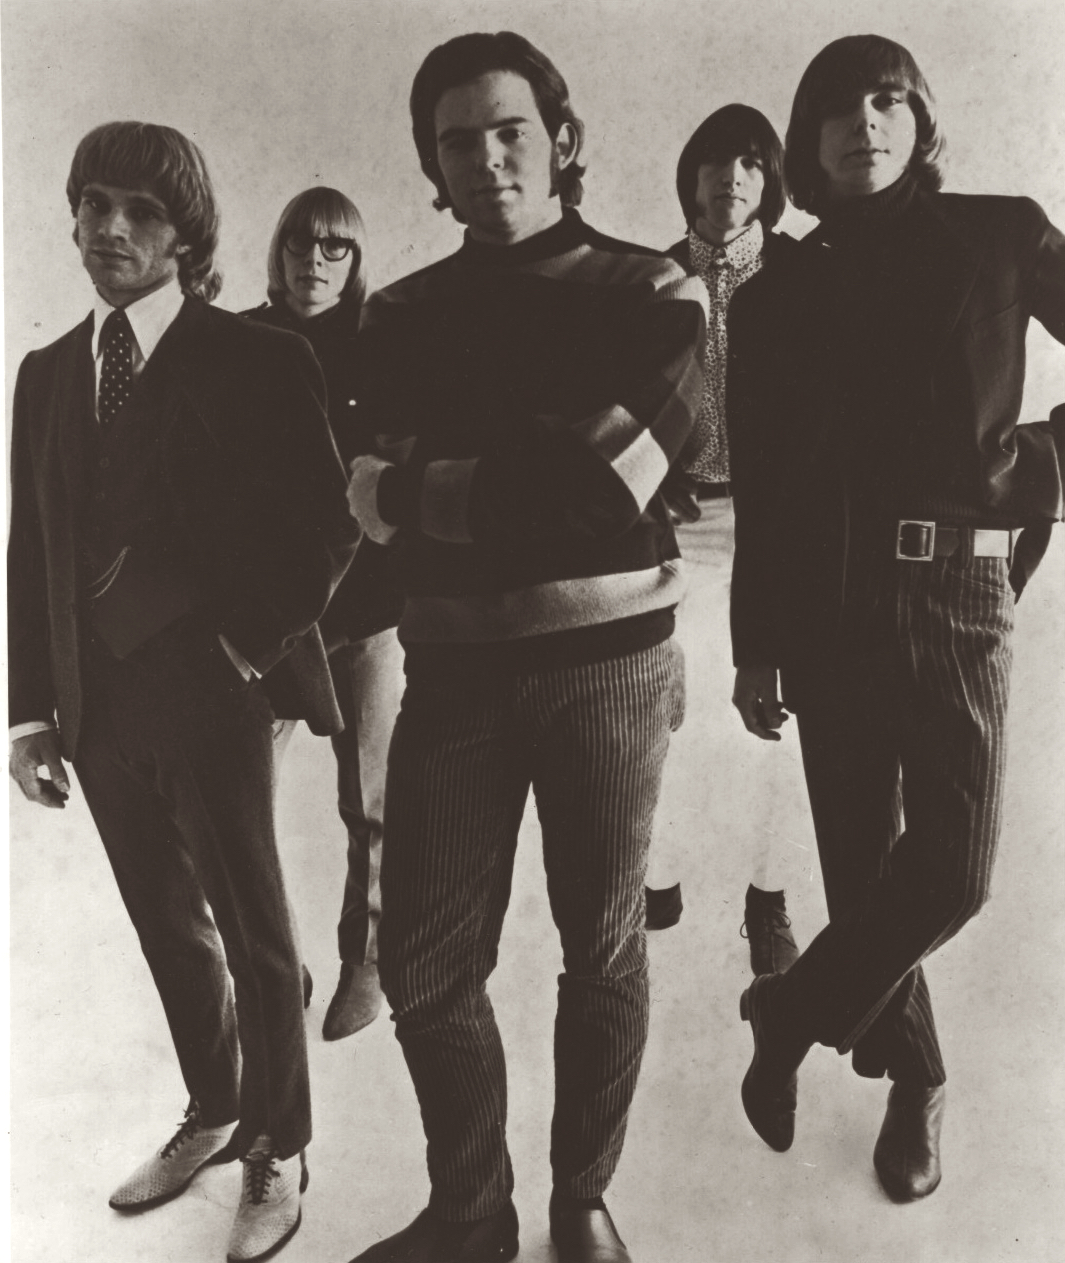 The Chocolate Watchband - Wikipedia